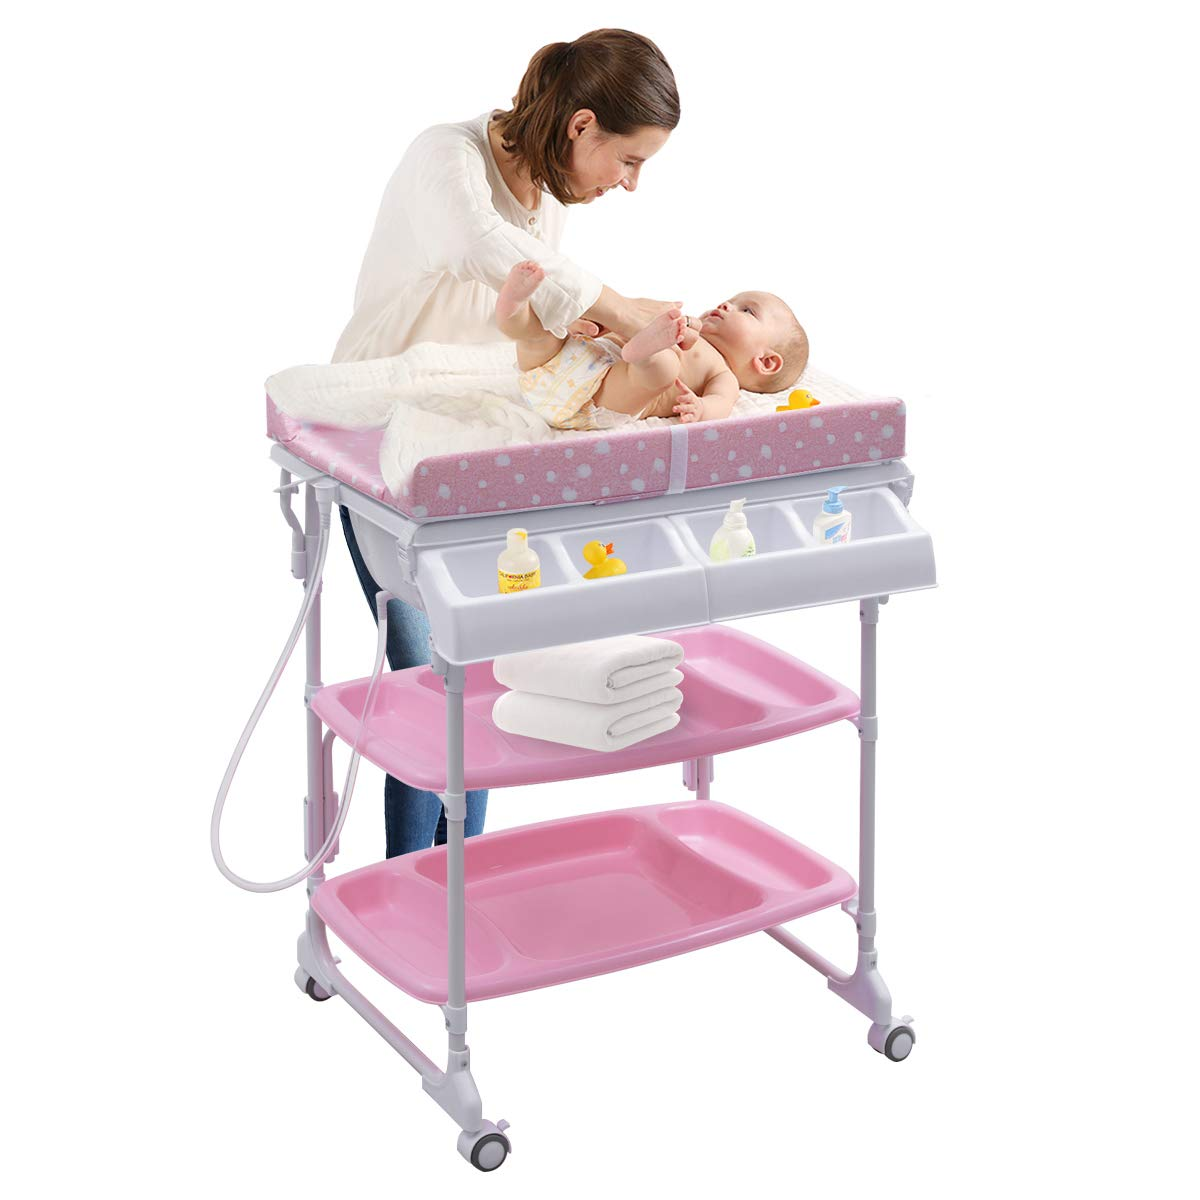 Costzon Baby Bath and Changing Center, Infant Changing Table, Diaper Organizer with Tube & Cushion (Pink)